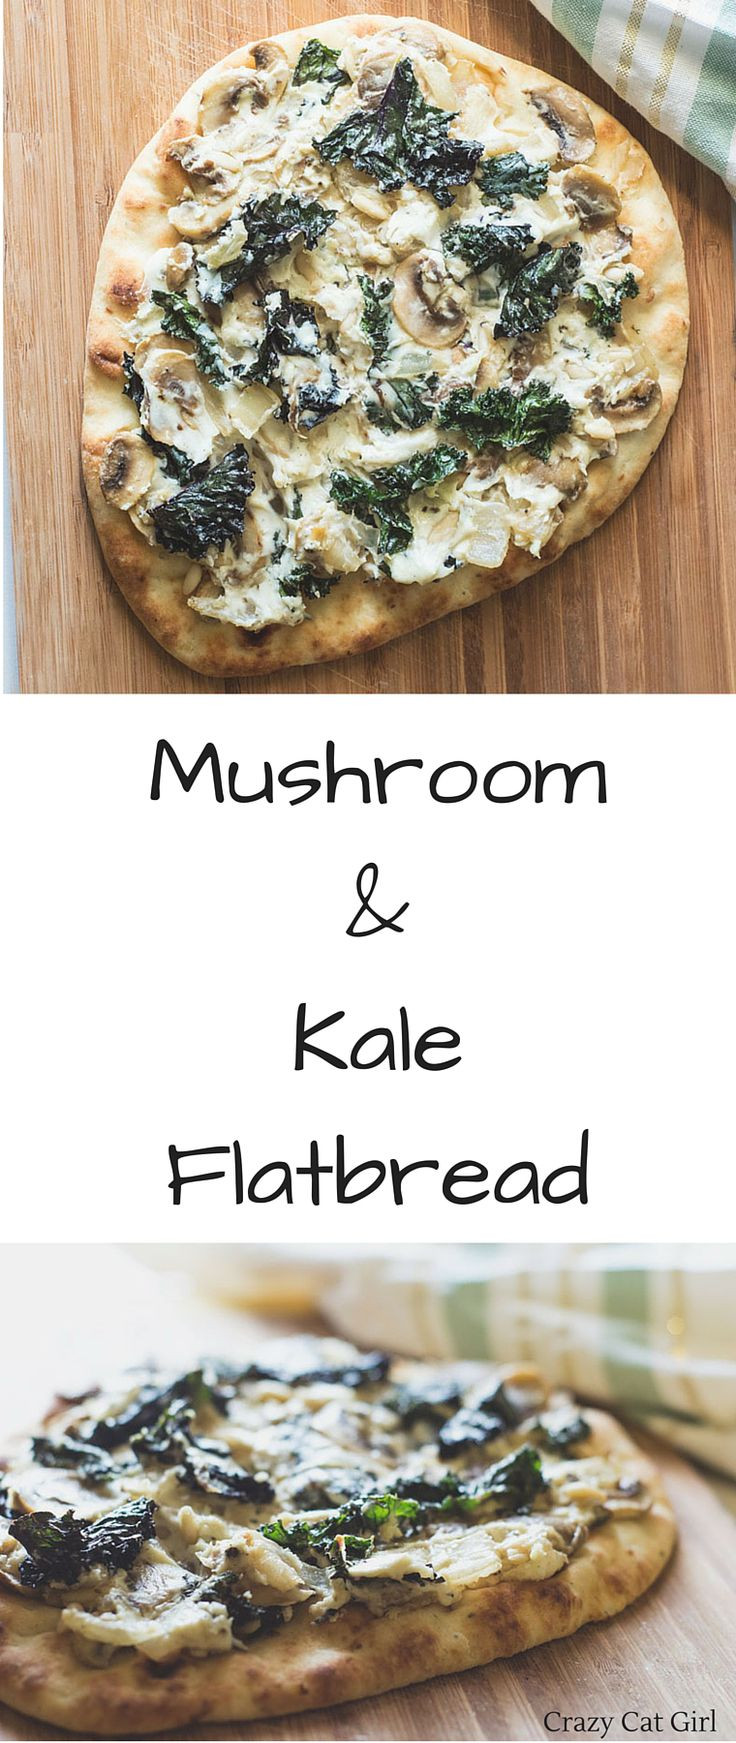 Mushroom & Kale Flatbread (Naan) Single-serving flatbread ready in less than 30 minutes.